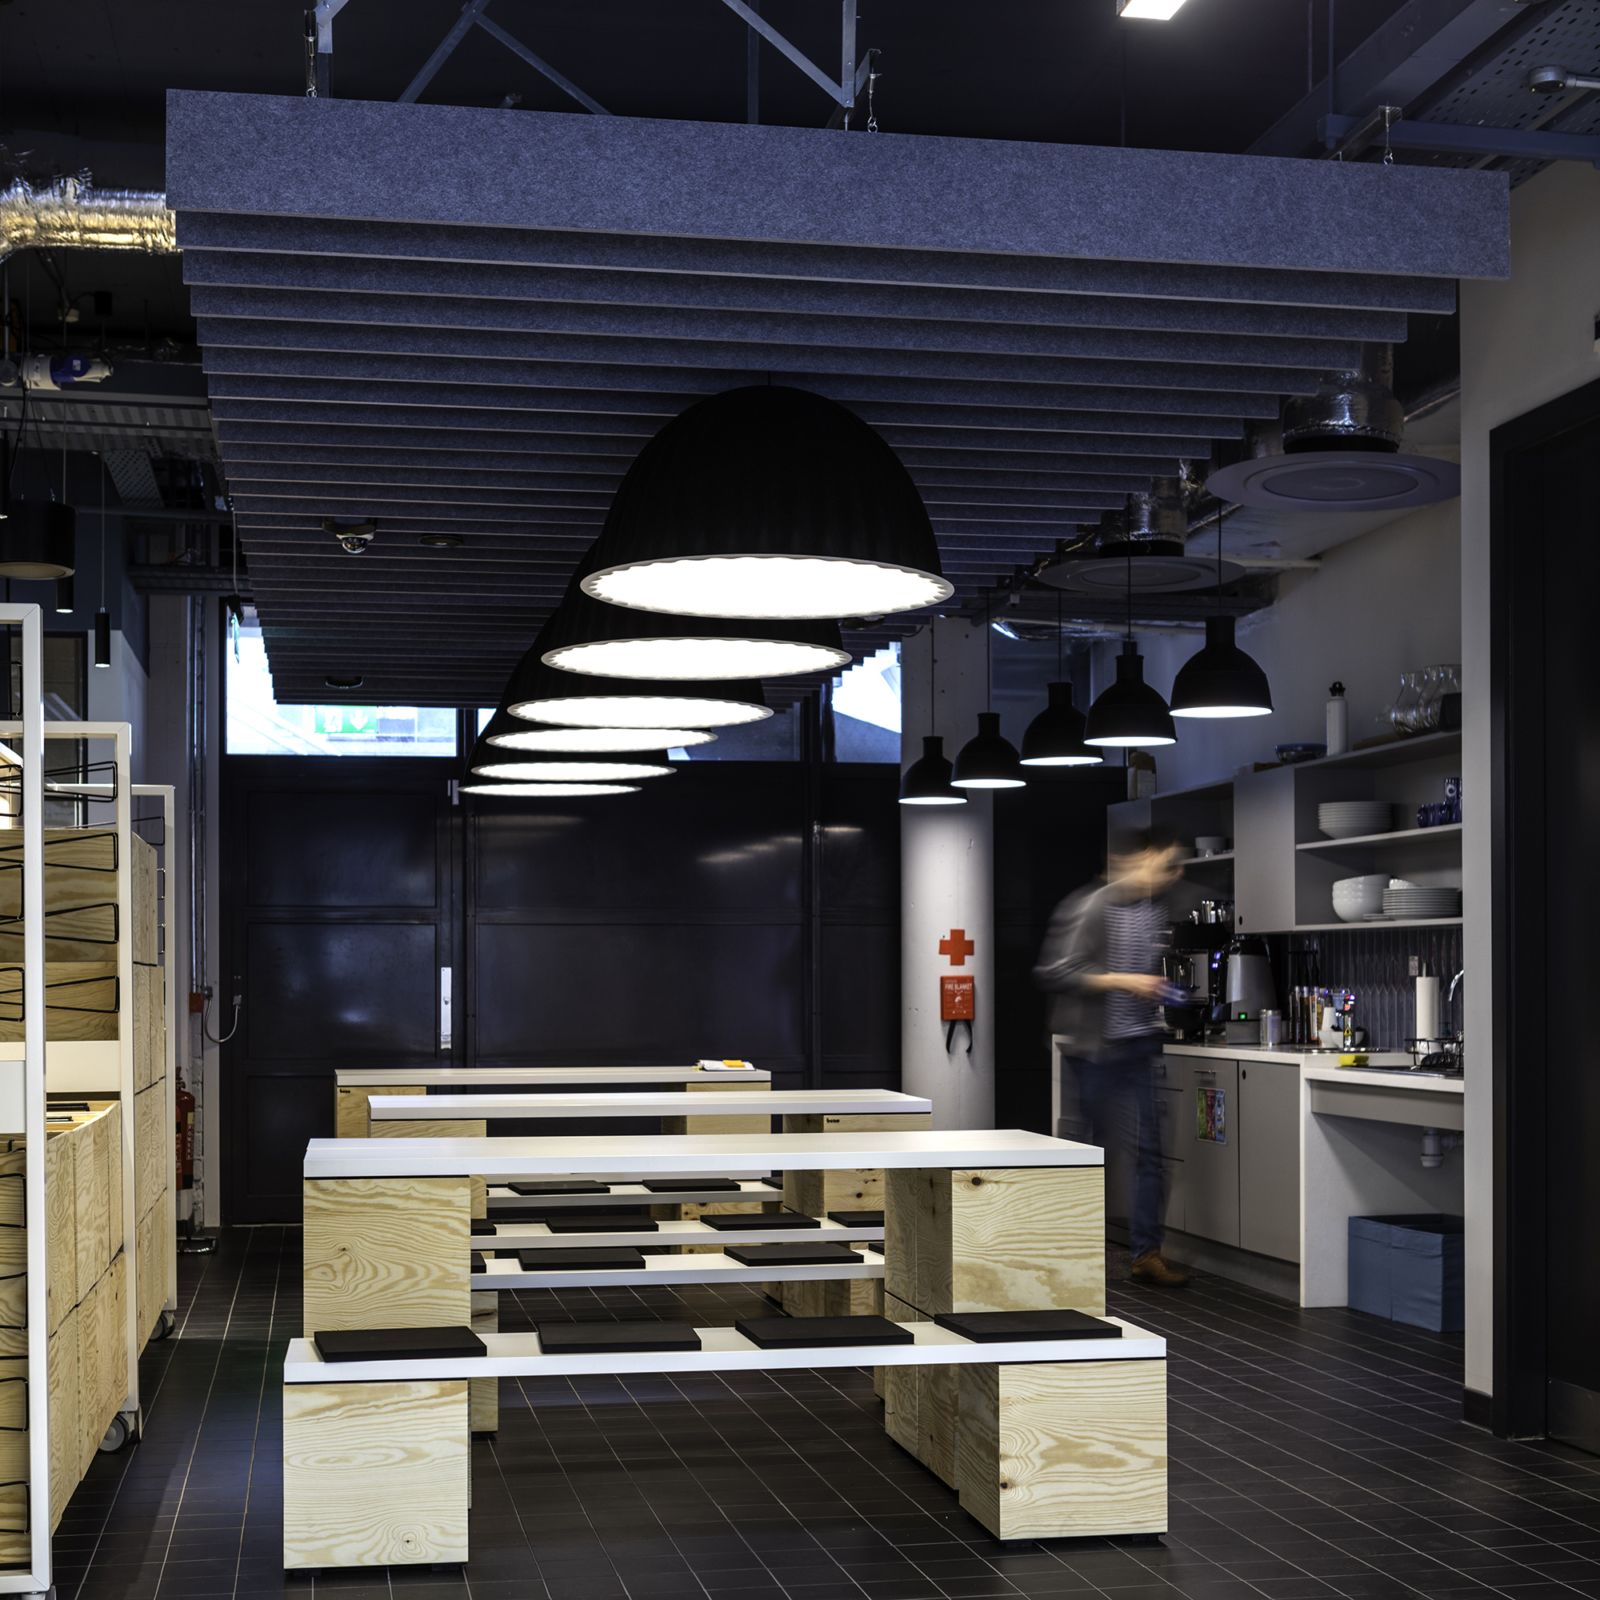 Sonica-Fitout-Consensys-5